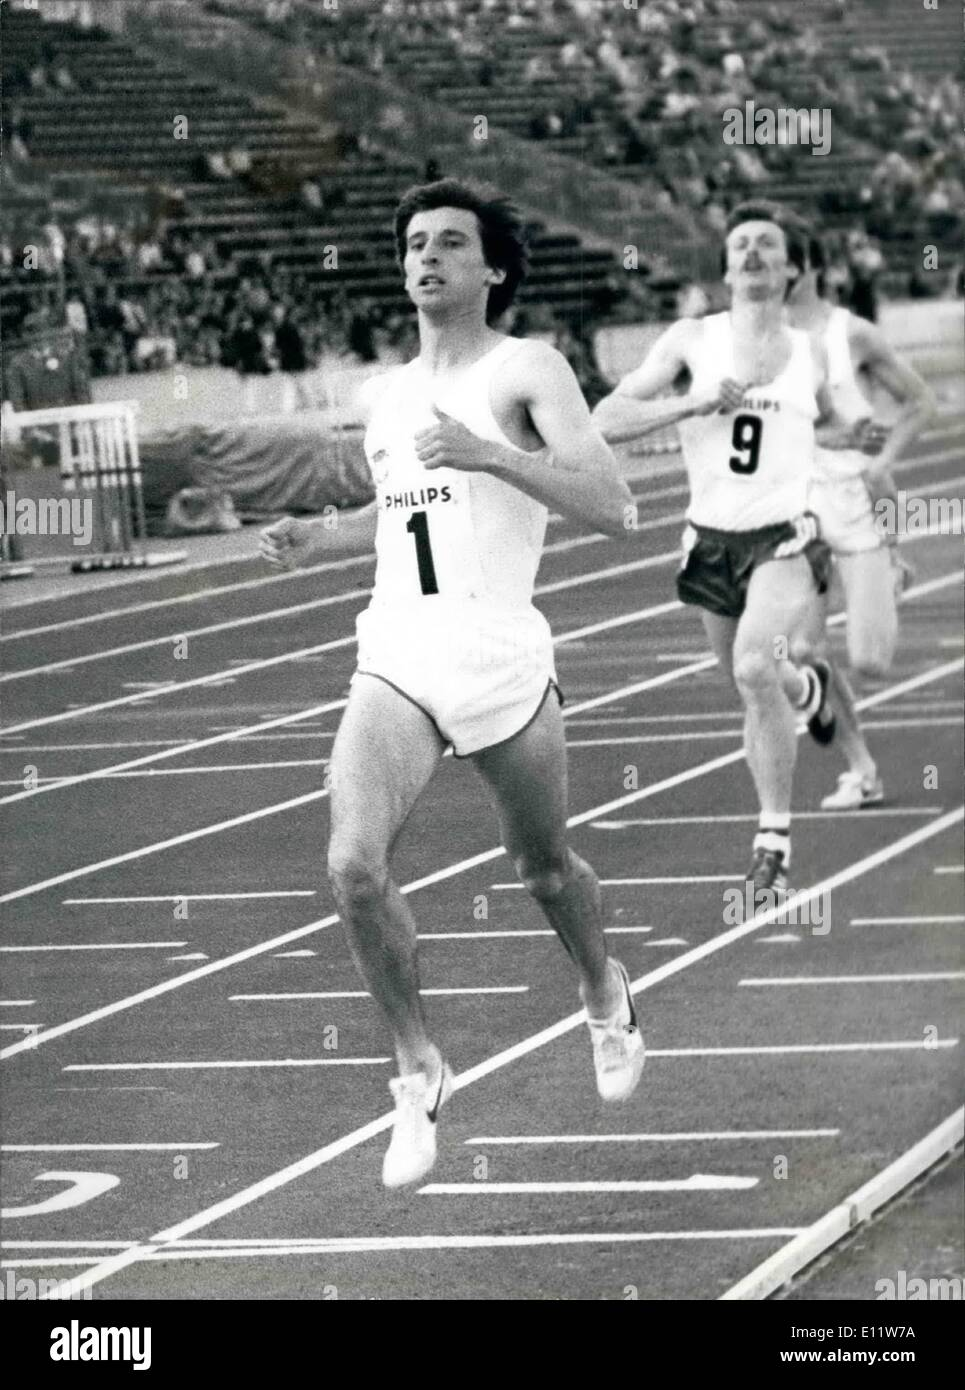 May 05, 1980 - SEBASTIAN COE WINS BOOMETRES AT CRYSTAL PALACE Sebastian Coe cruises to viotory in the 800 Metres On the .Philipe Nifht of Athletios at the Crystal Palaoe,in London lest night in hOe build.up to the Moivoow Olympics. - Stock Image